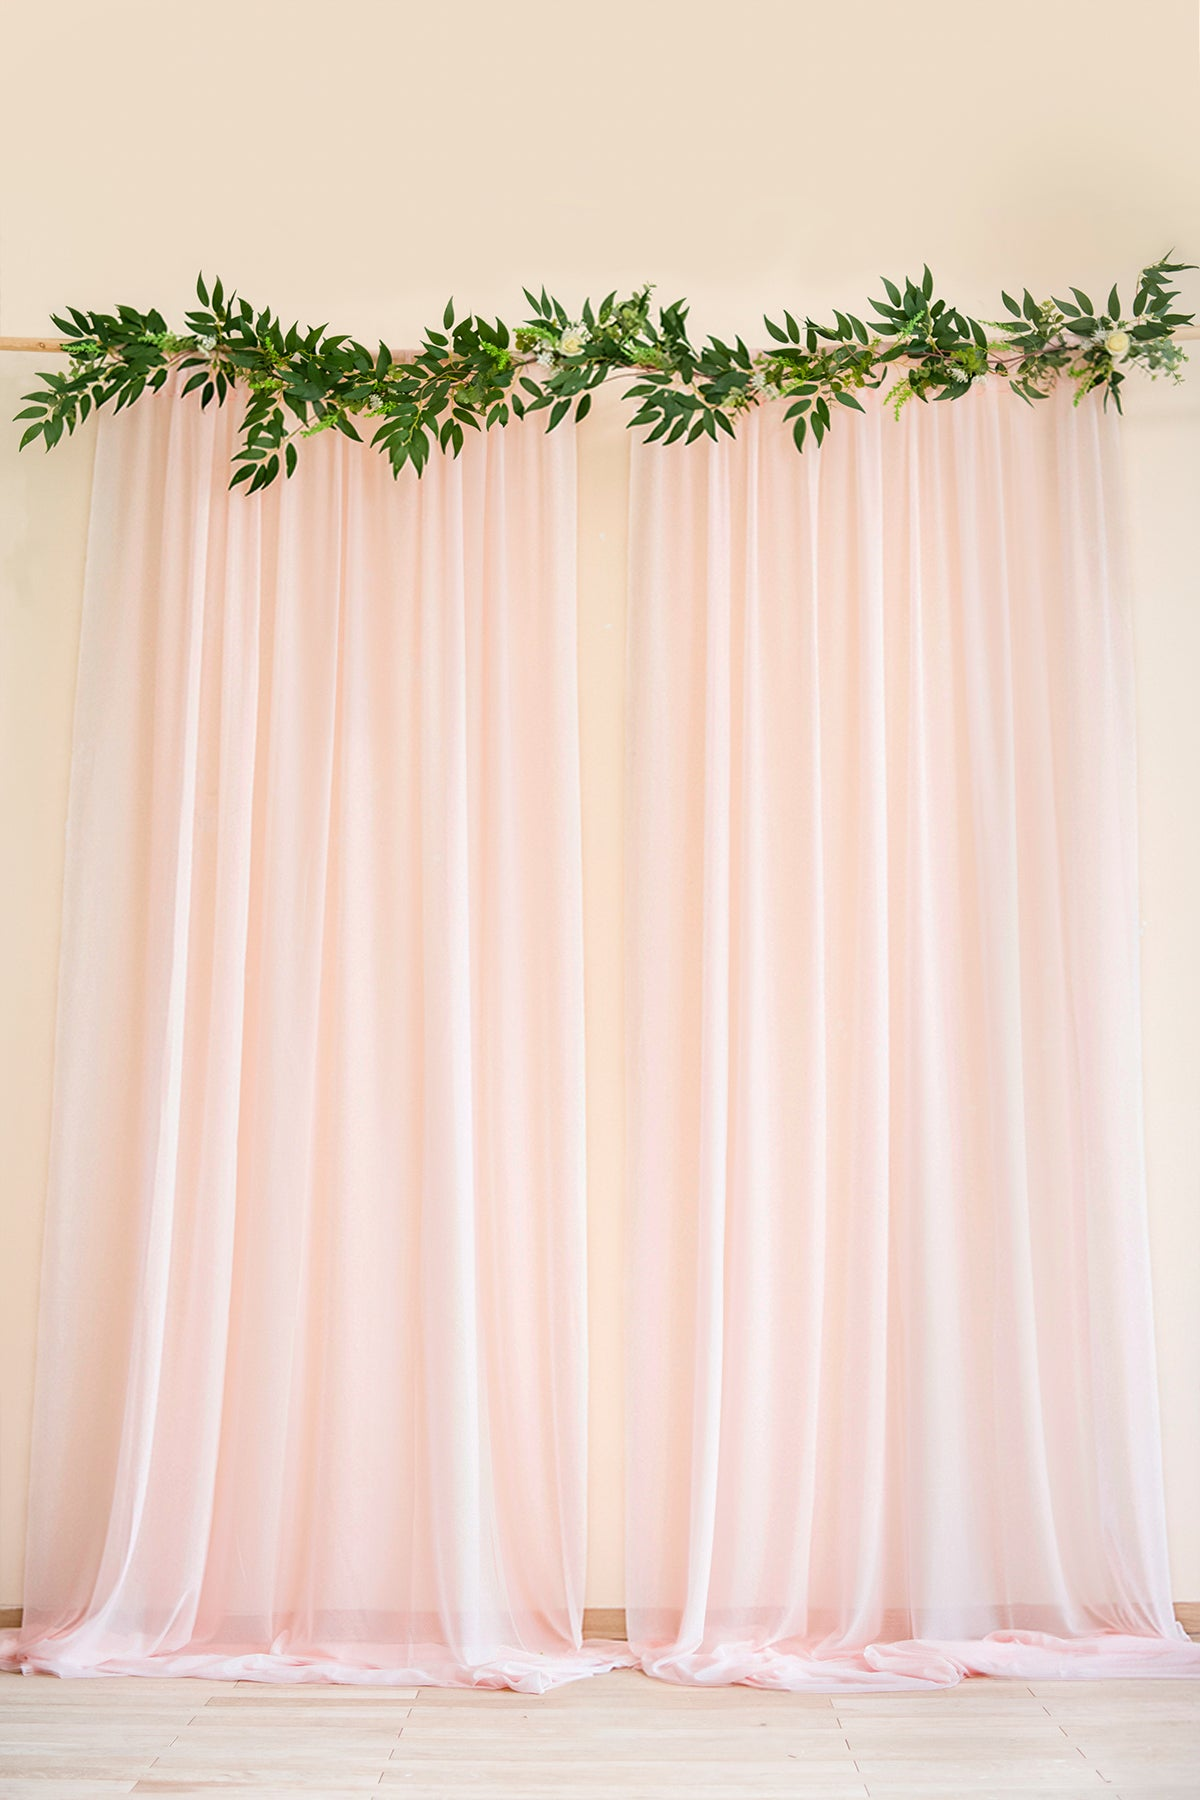 Sheer Backdrop Curtain Panels 60 W X 10ft Set Of 2 7 Colors